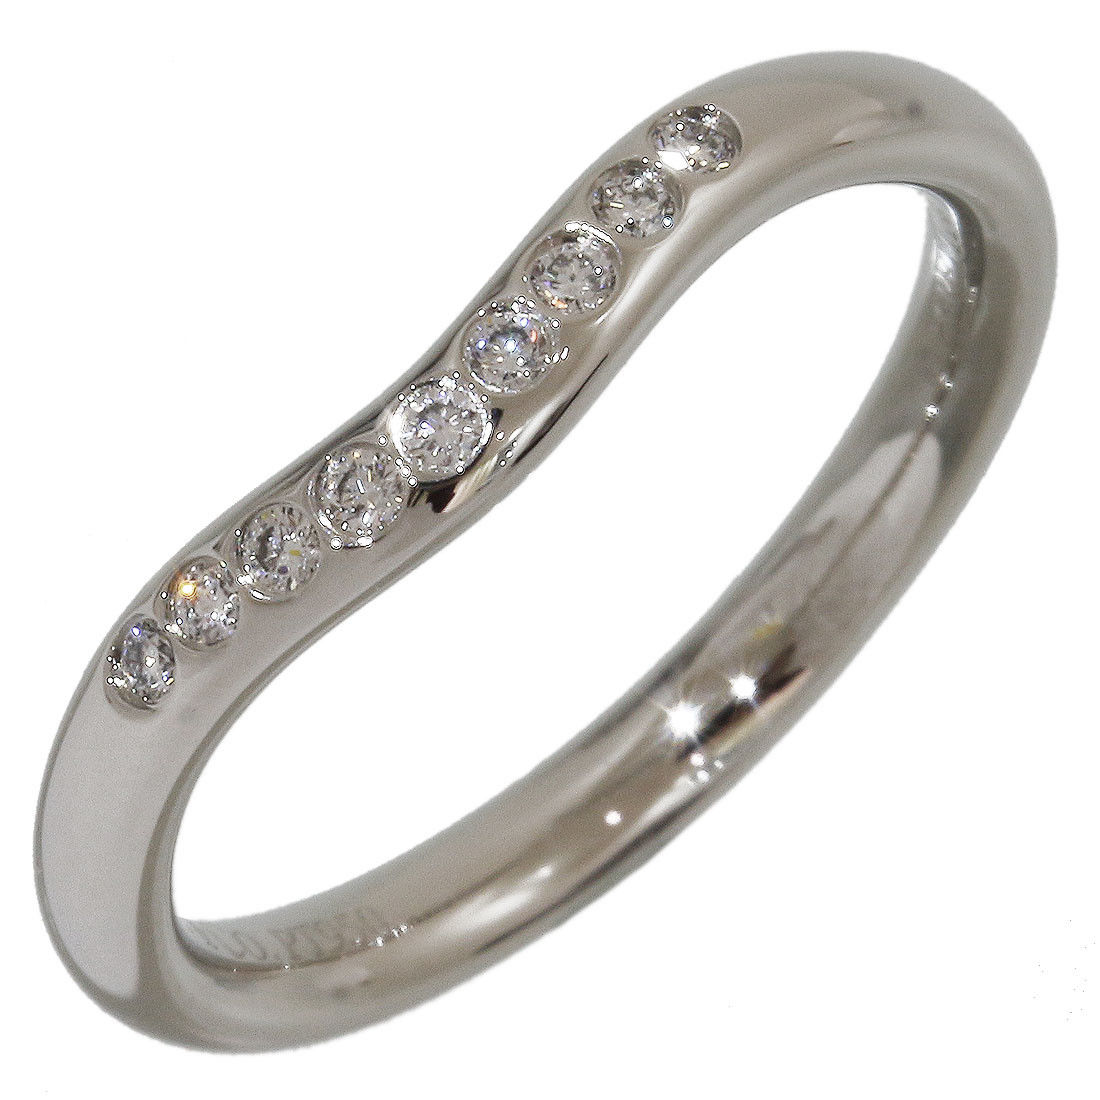 "Image of ""Tiffany 7 Co. Elsa Peretti 950 Platinum with 9P Diamond Curved Ring"""